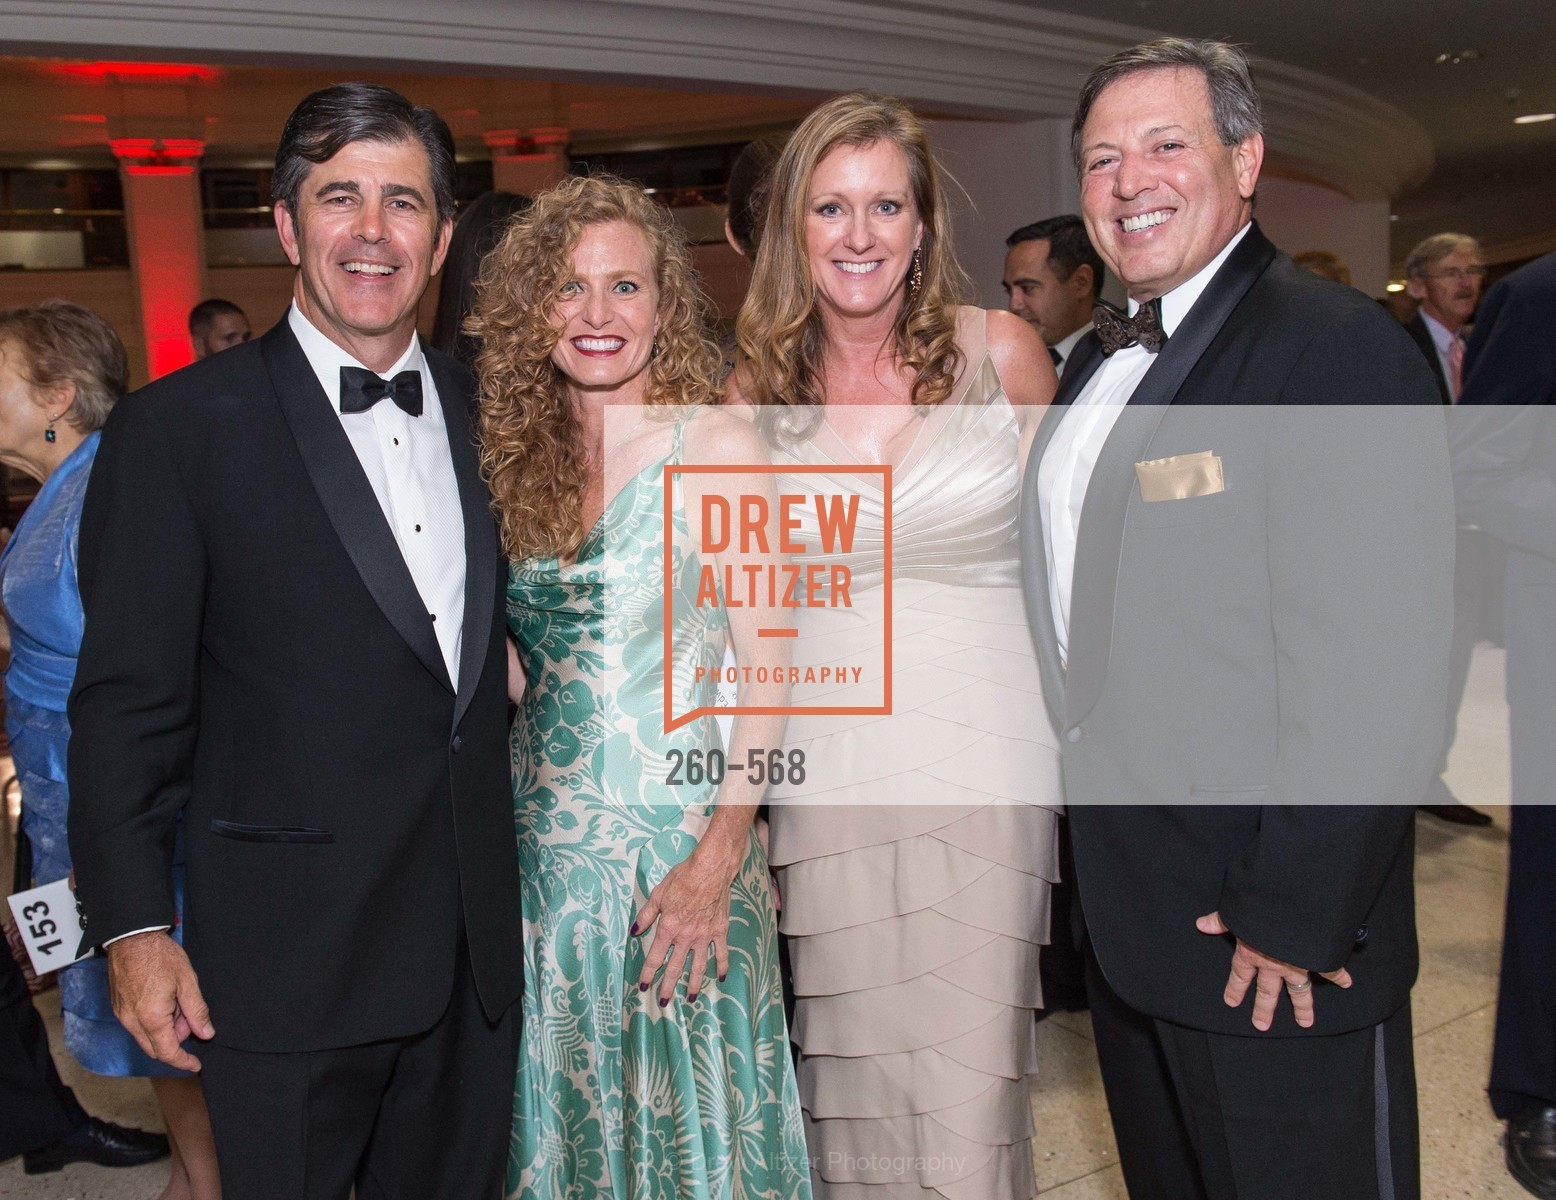 John Protopappas, Laurie Edwards, Melissa Russo, John Russo, SOTHEBY'S  Hosts a Private Viewing of Highlights from the Collection of MRS. PAUL MELLON, US, September 17th, 2014,Drew Altizer, Drew Altizer Photography, full-service event agency, private events, San Francisco photographer, photographer California